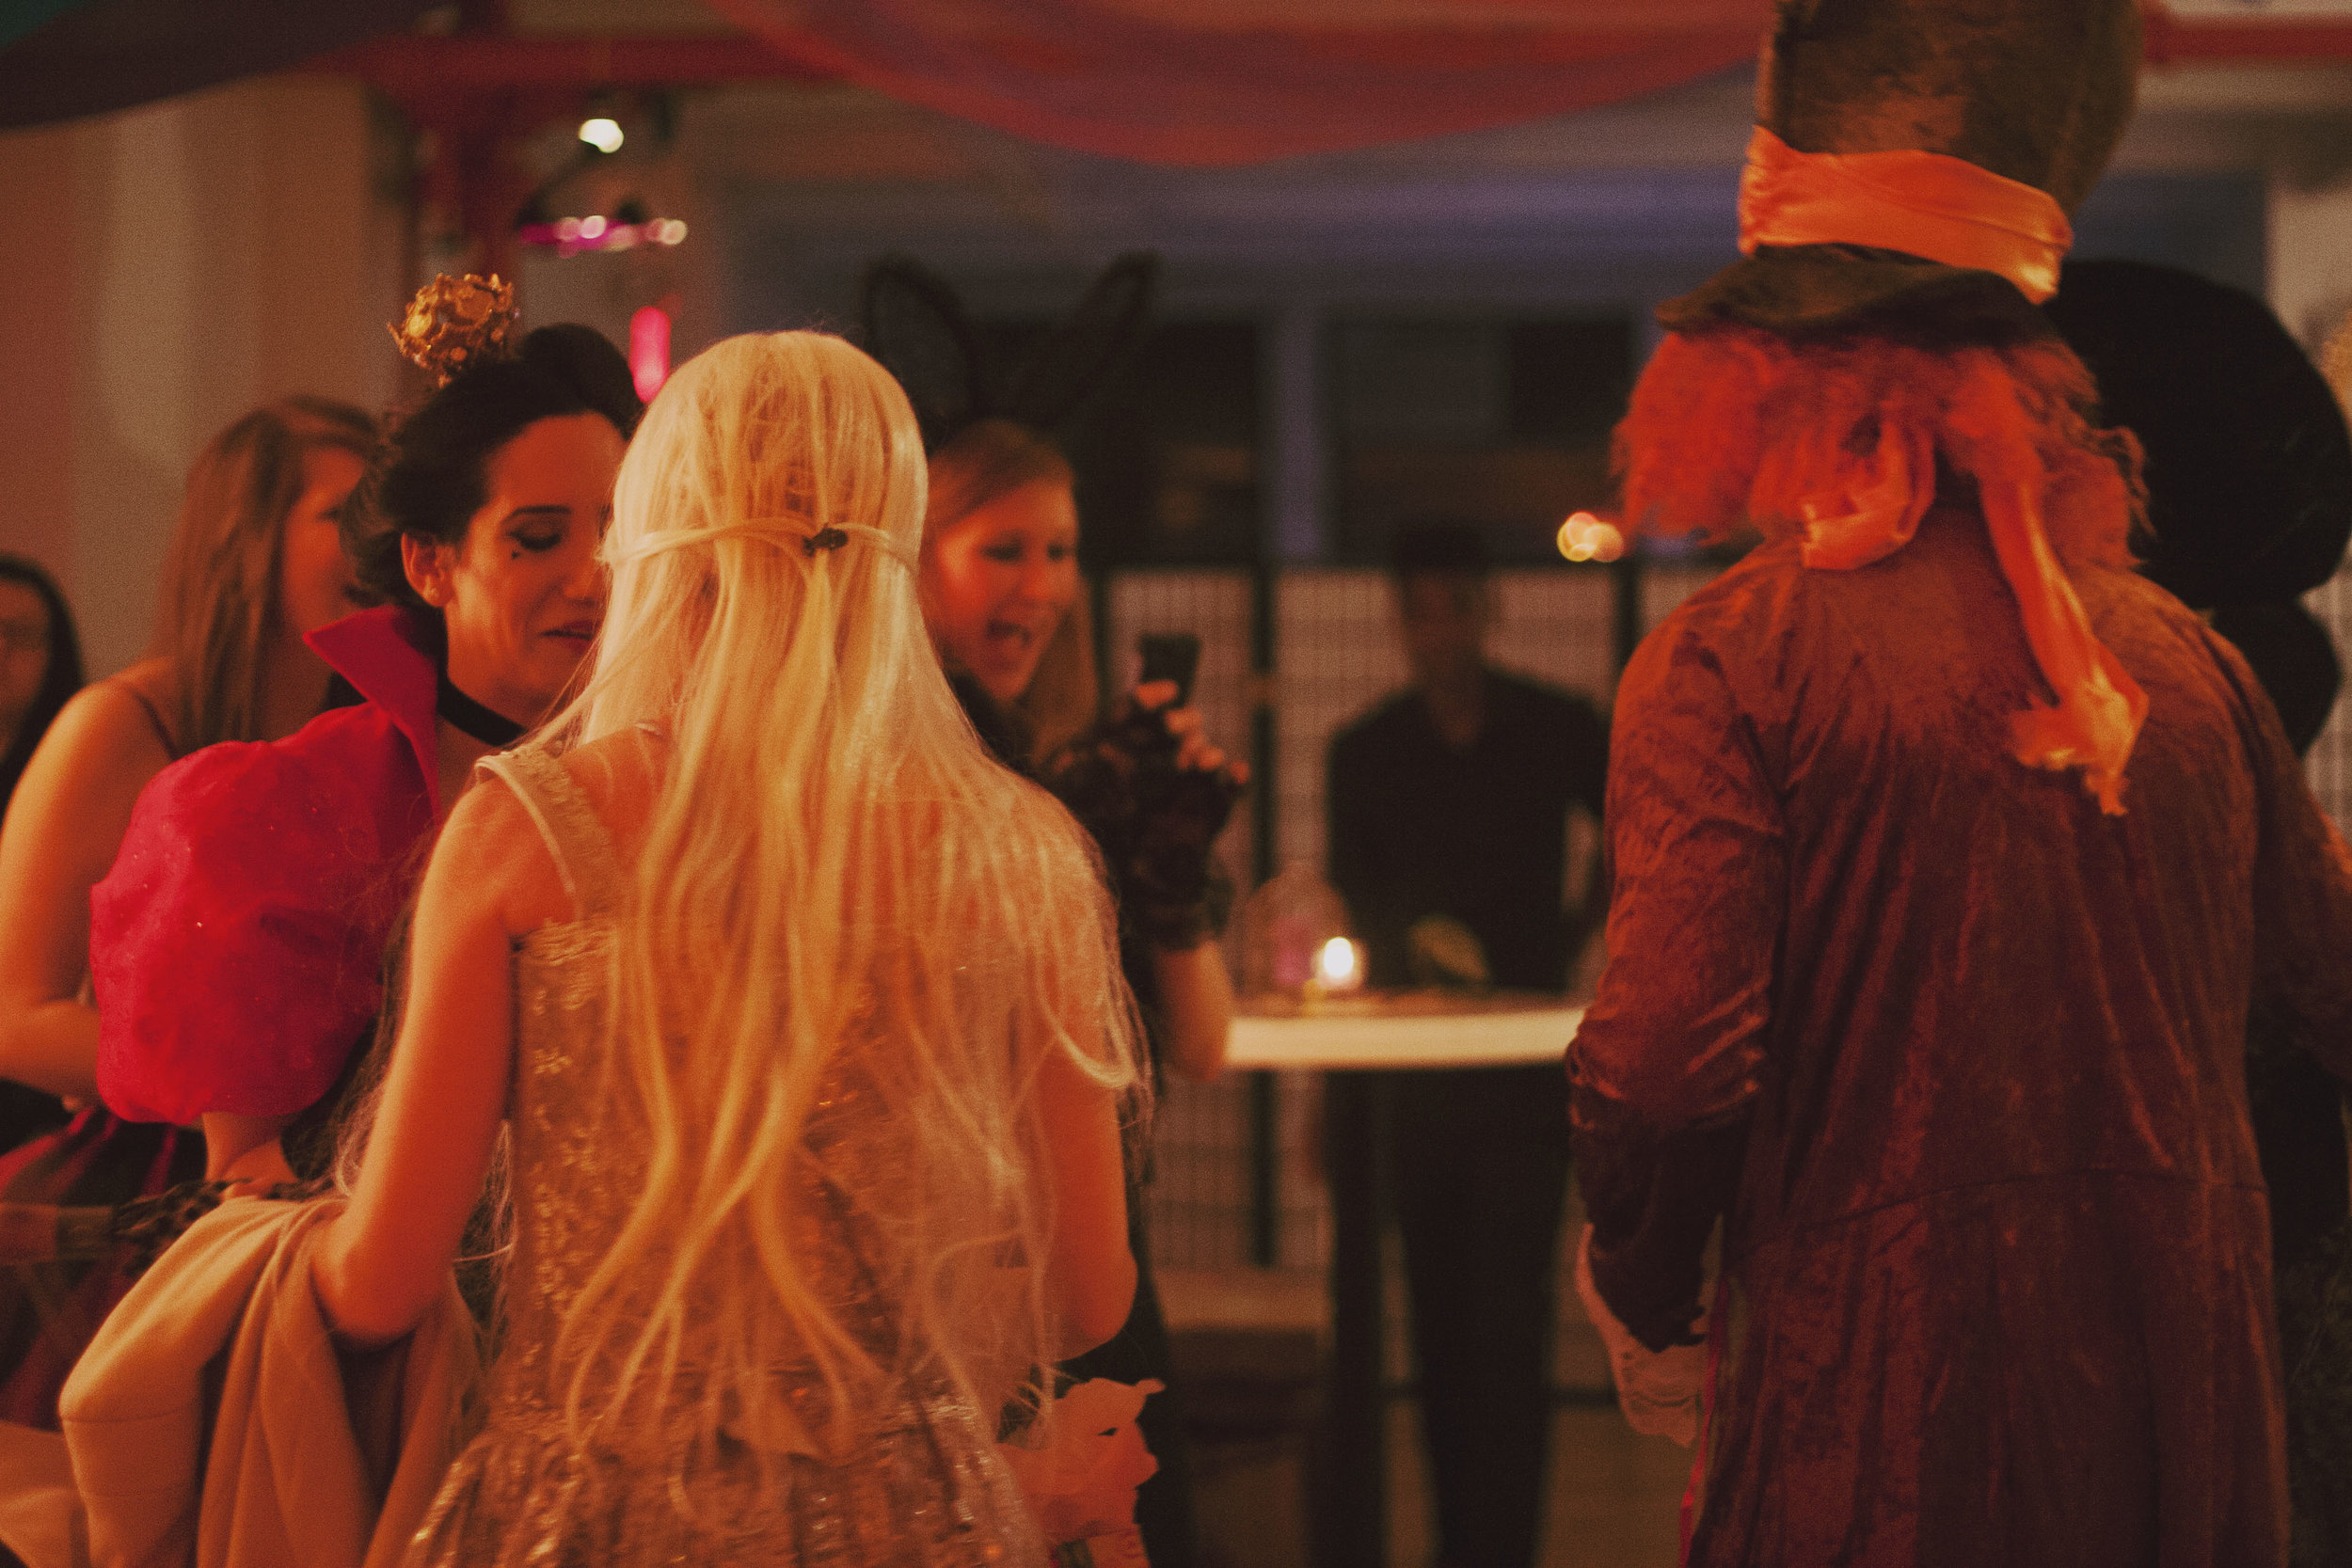 ny-events-costume-parties-decoration3.jpg